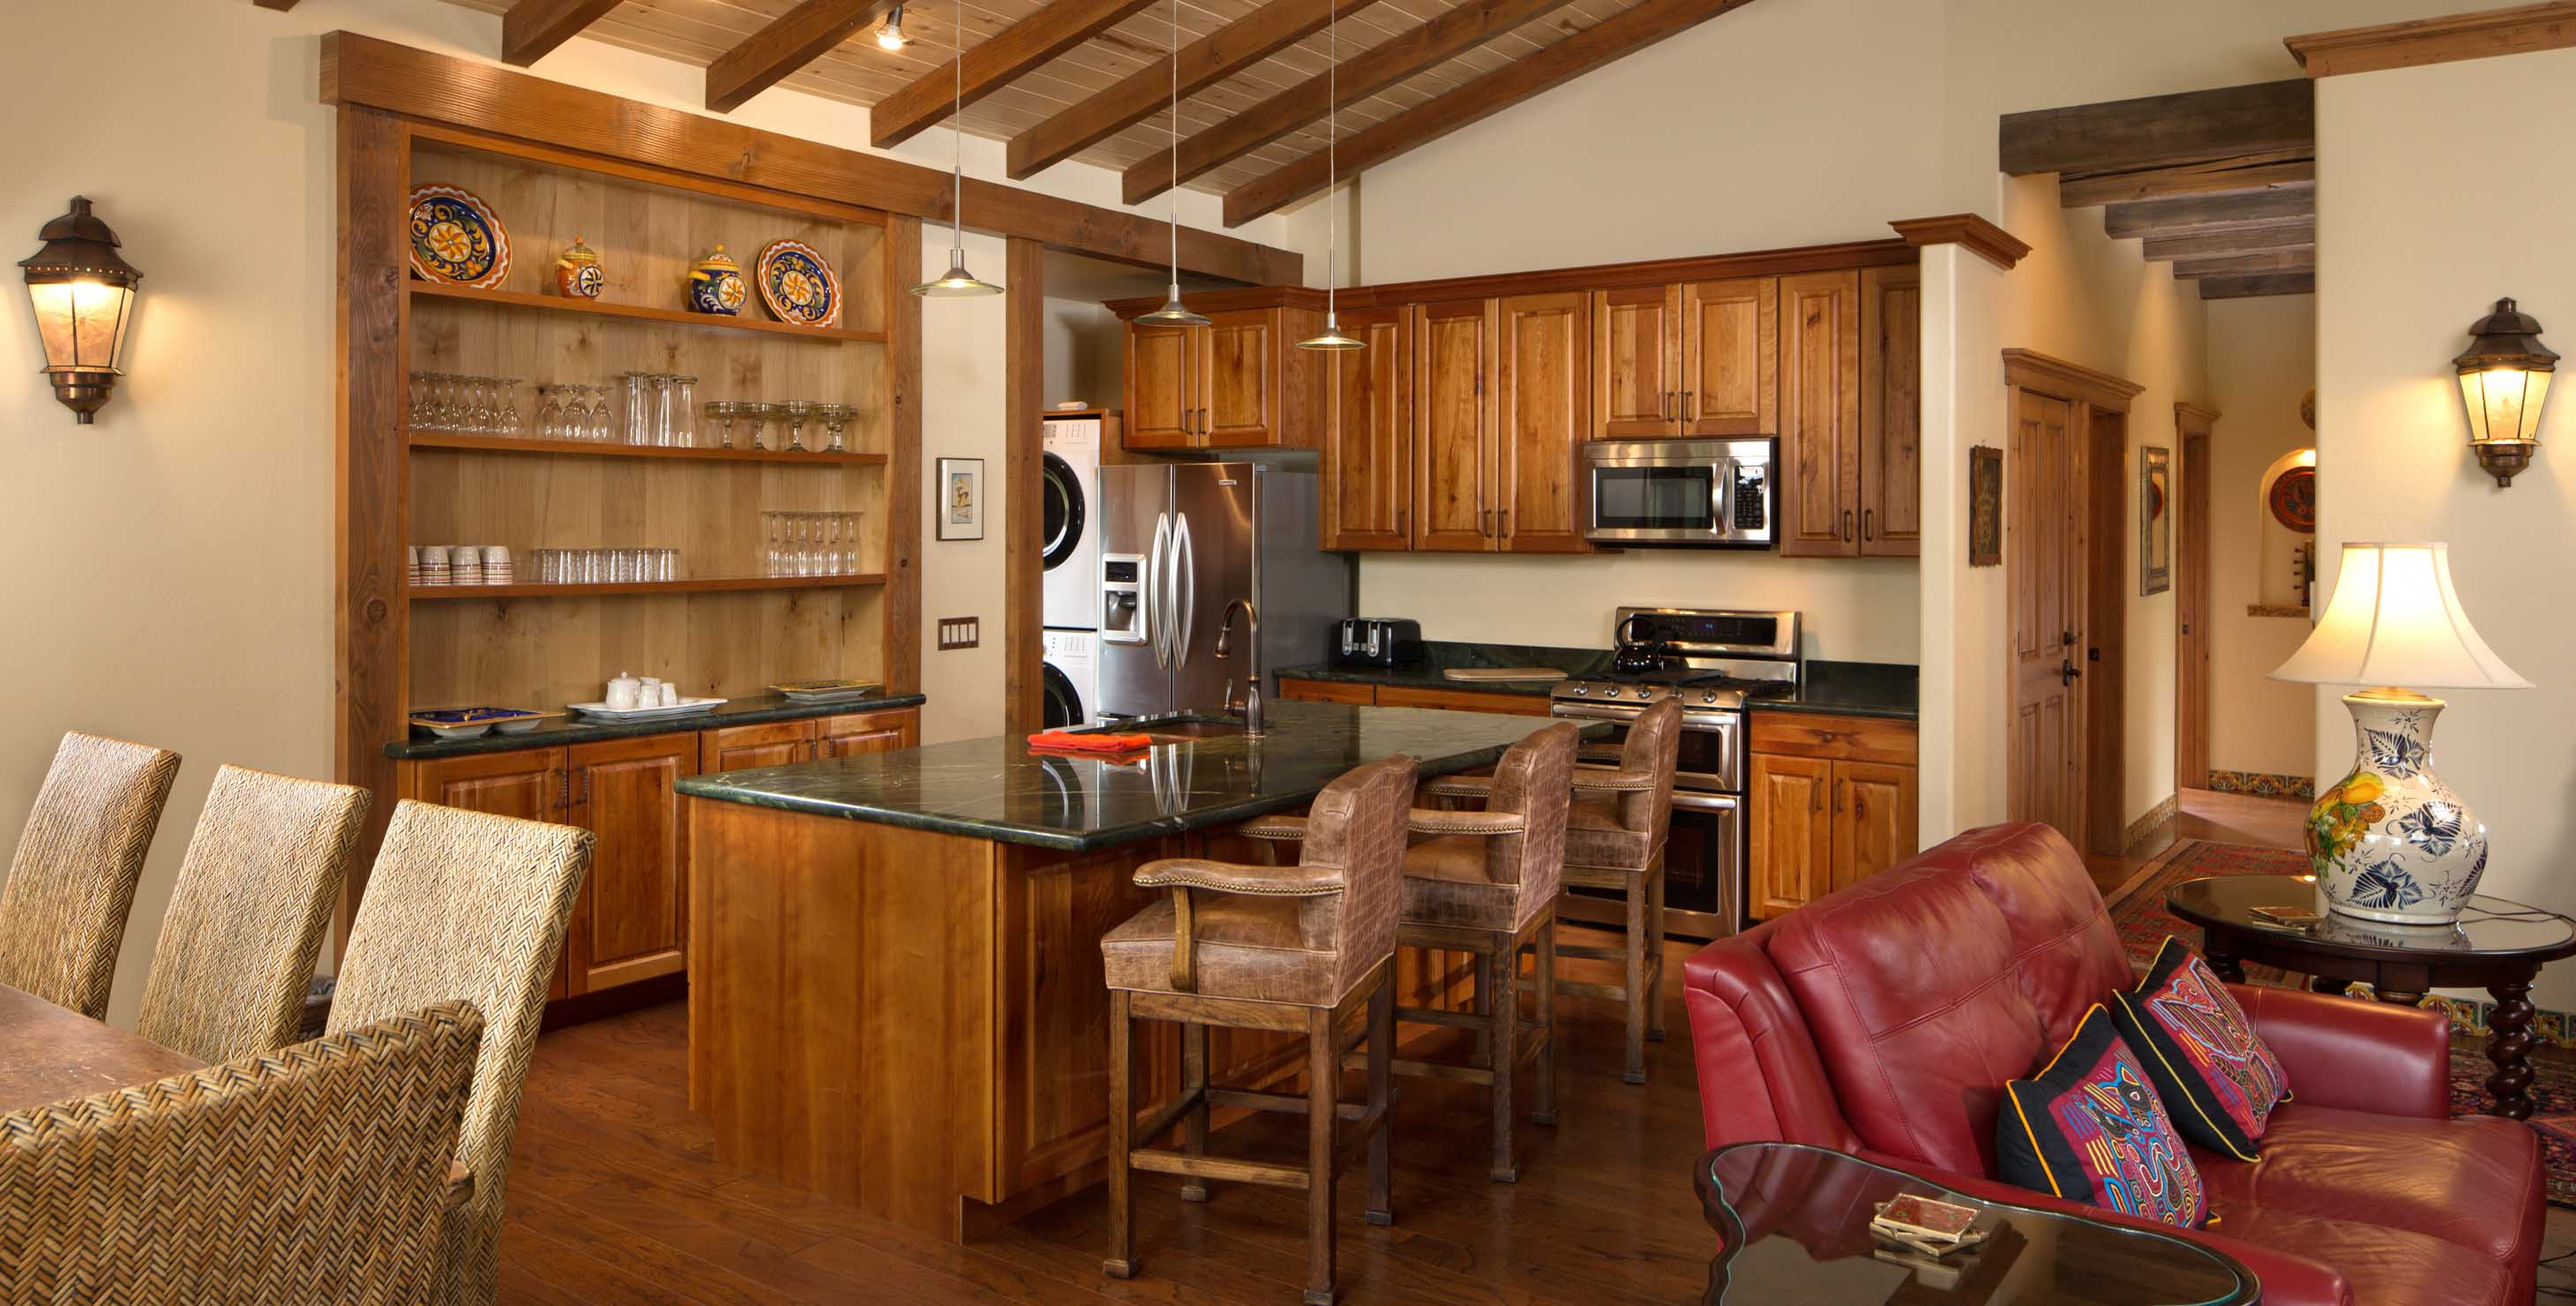 Large kitchen with island and bar stools, dining area, and red couch